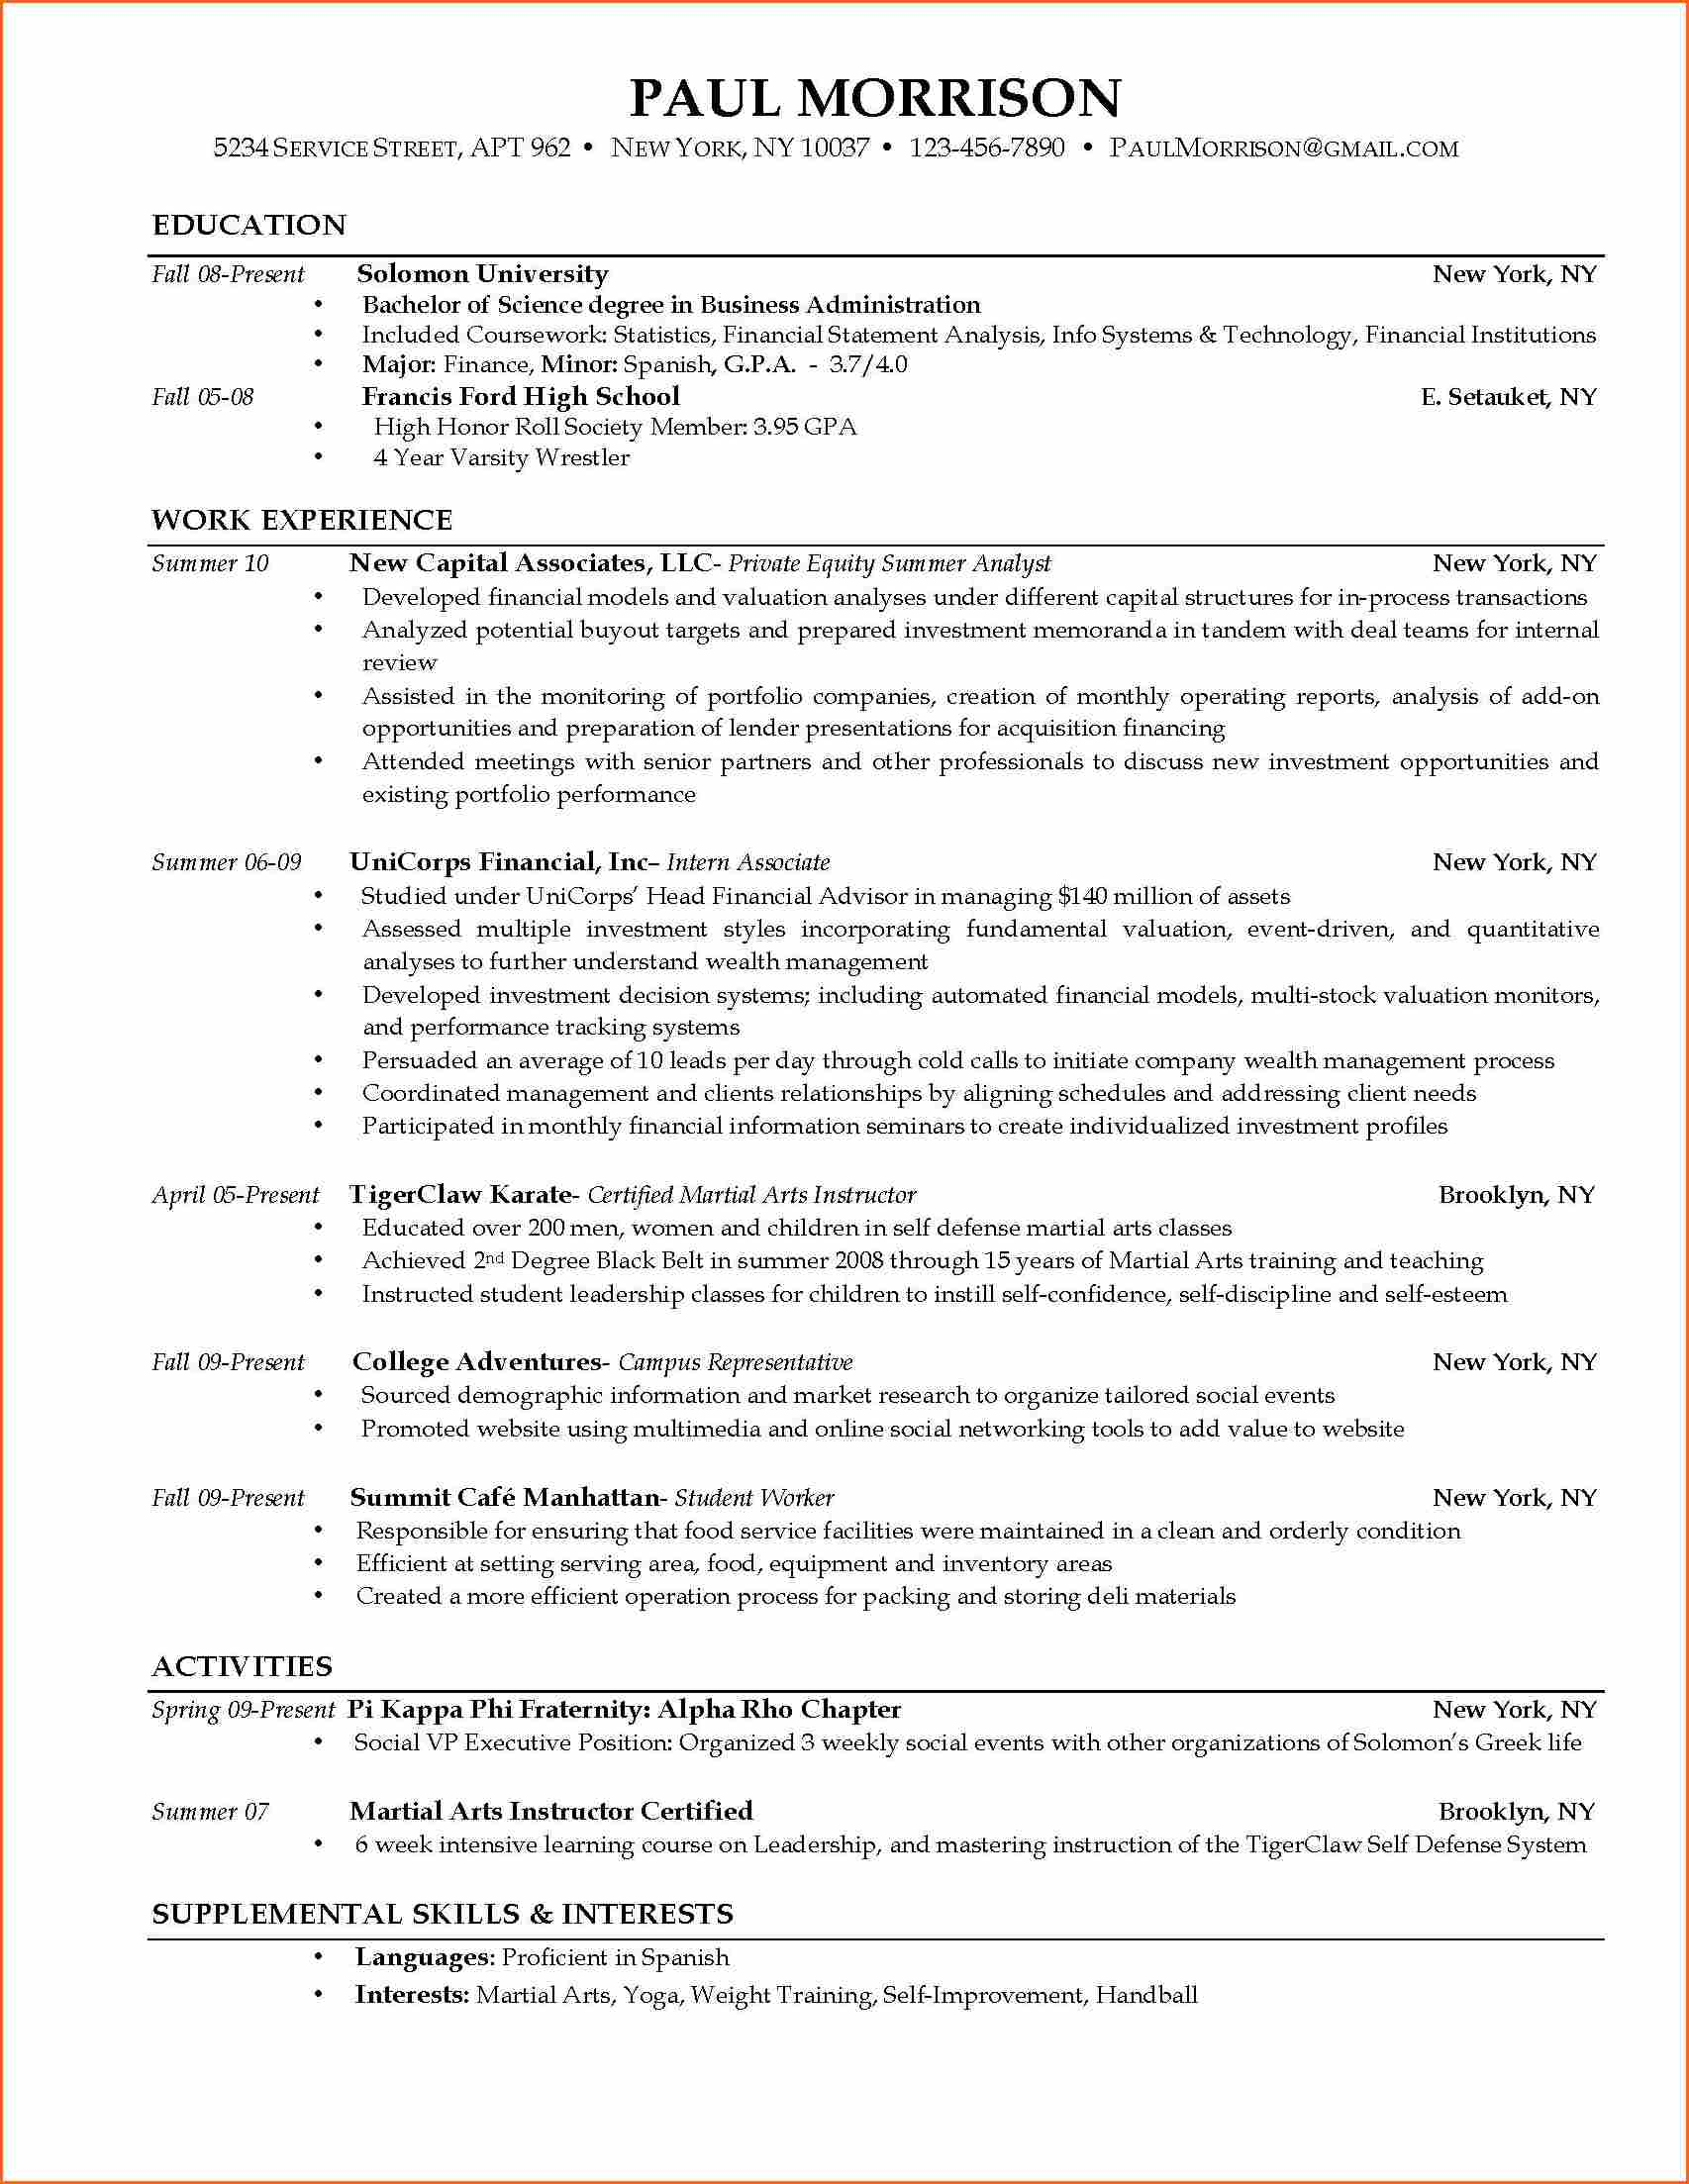 Current College Student Resume | berathen.Com